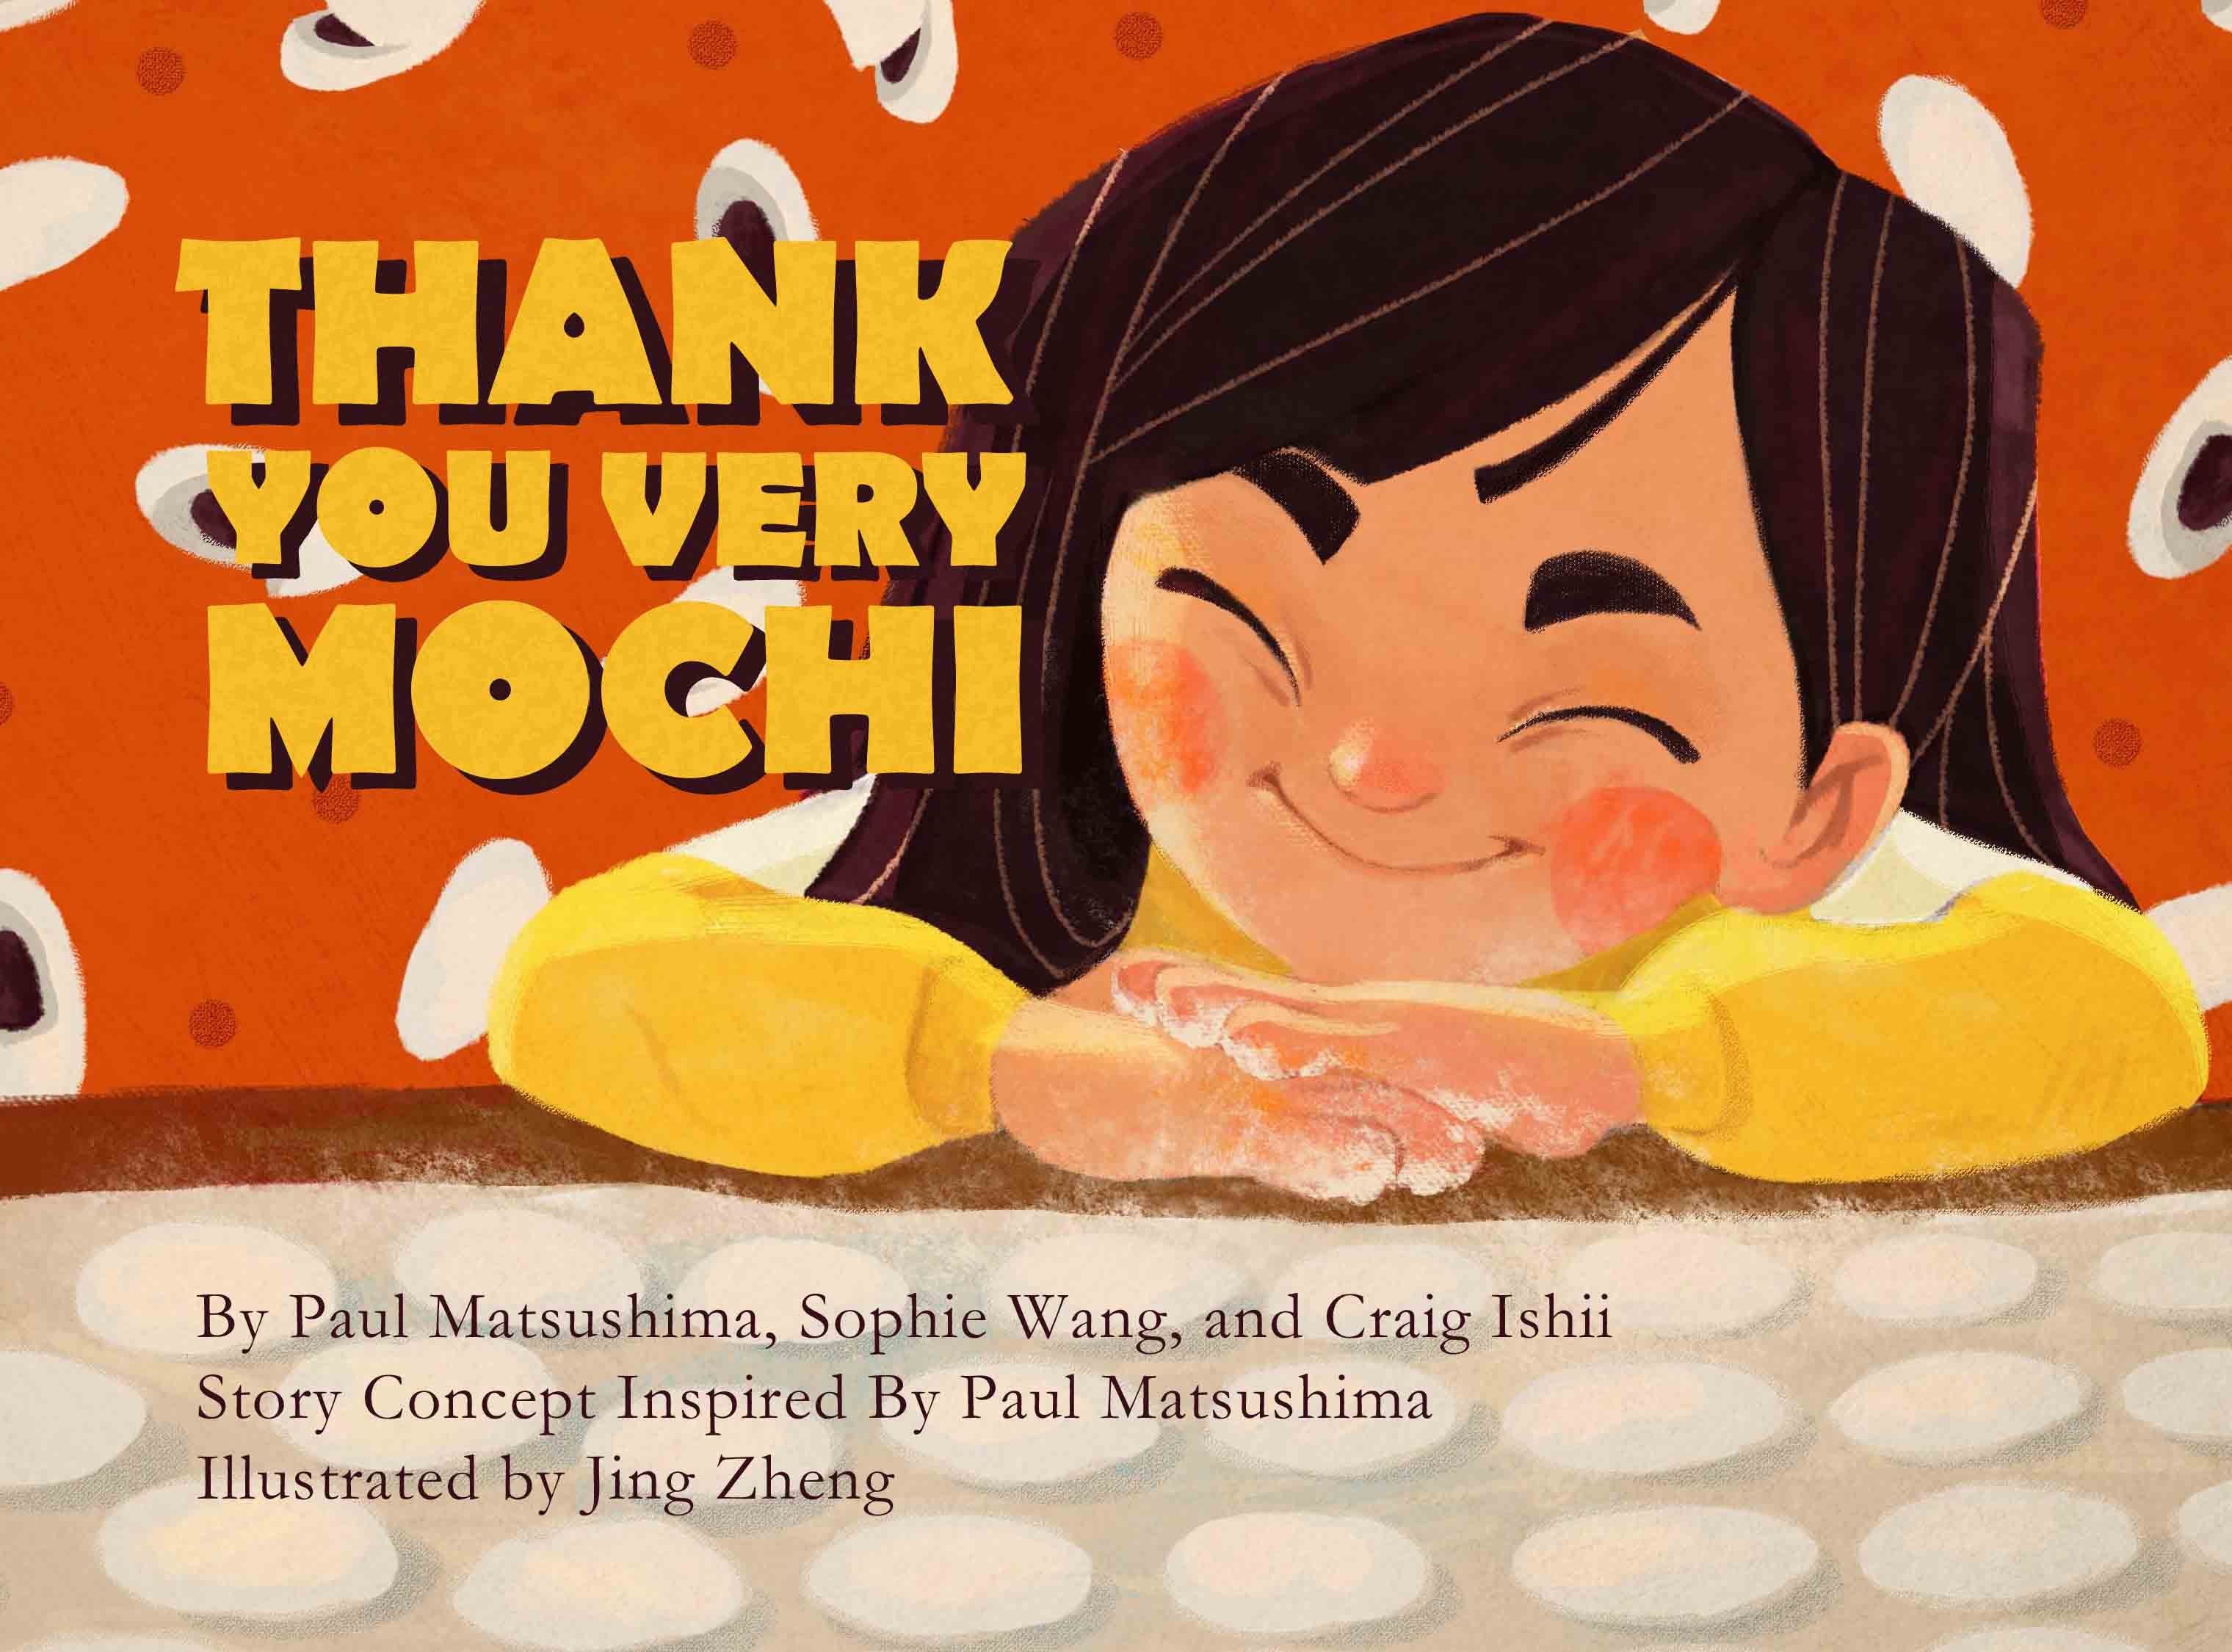 8Books Review: 'Thank You Very Mochi' by Paul Matsushima, Sophie Wang, and Craig Ishii